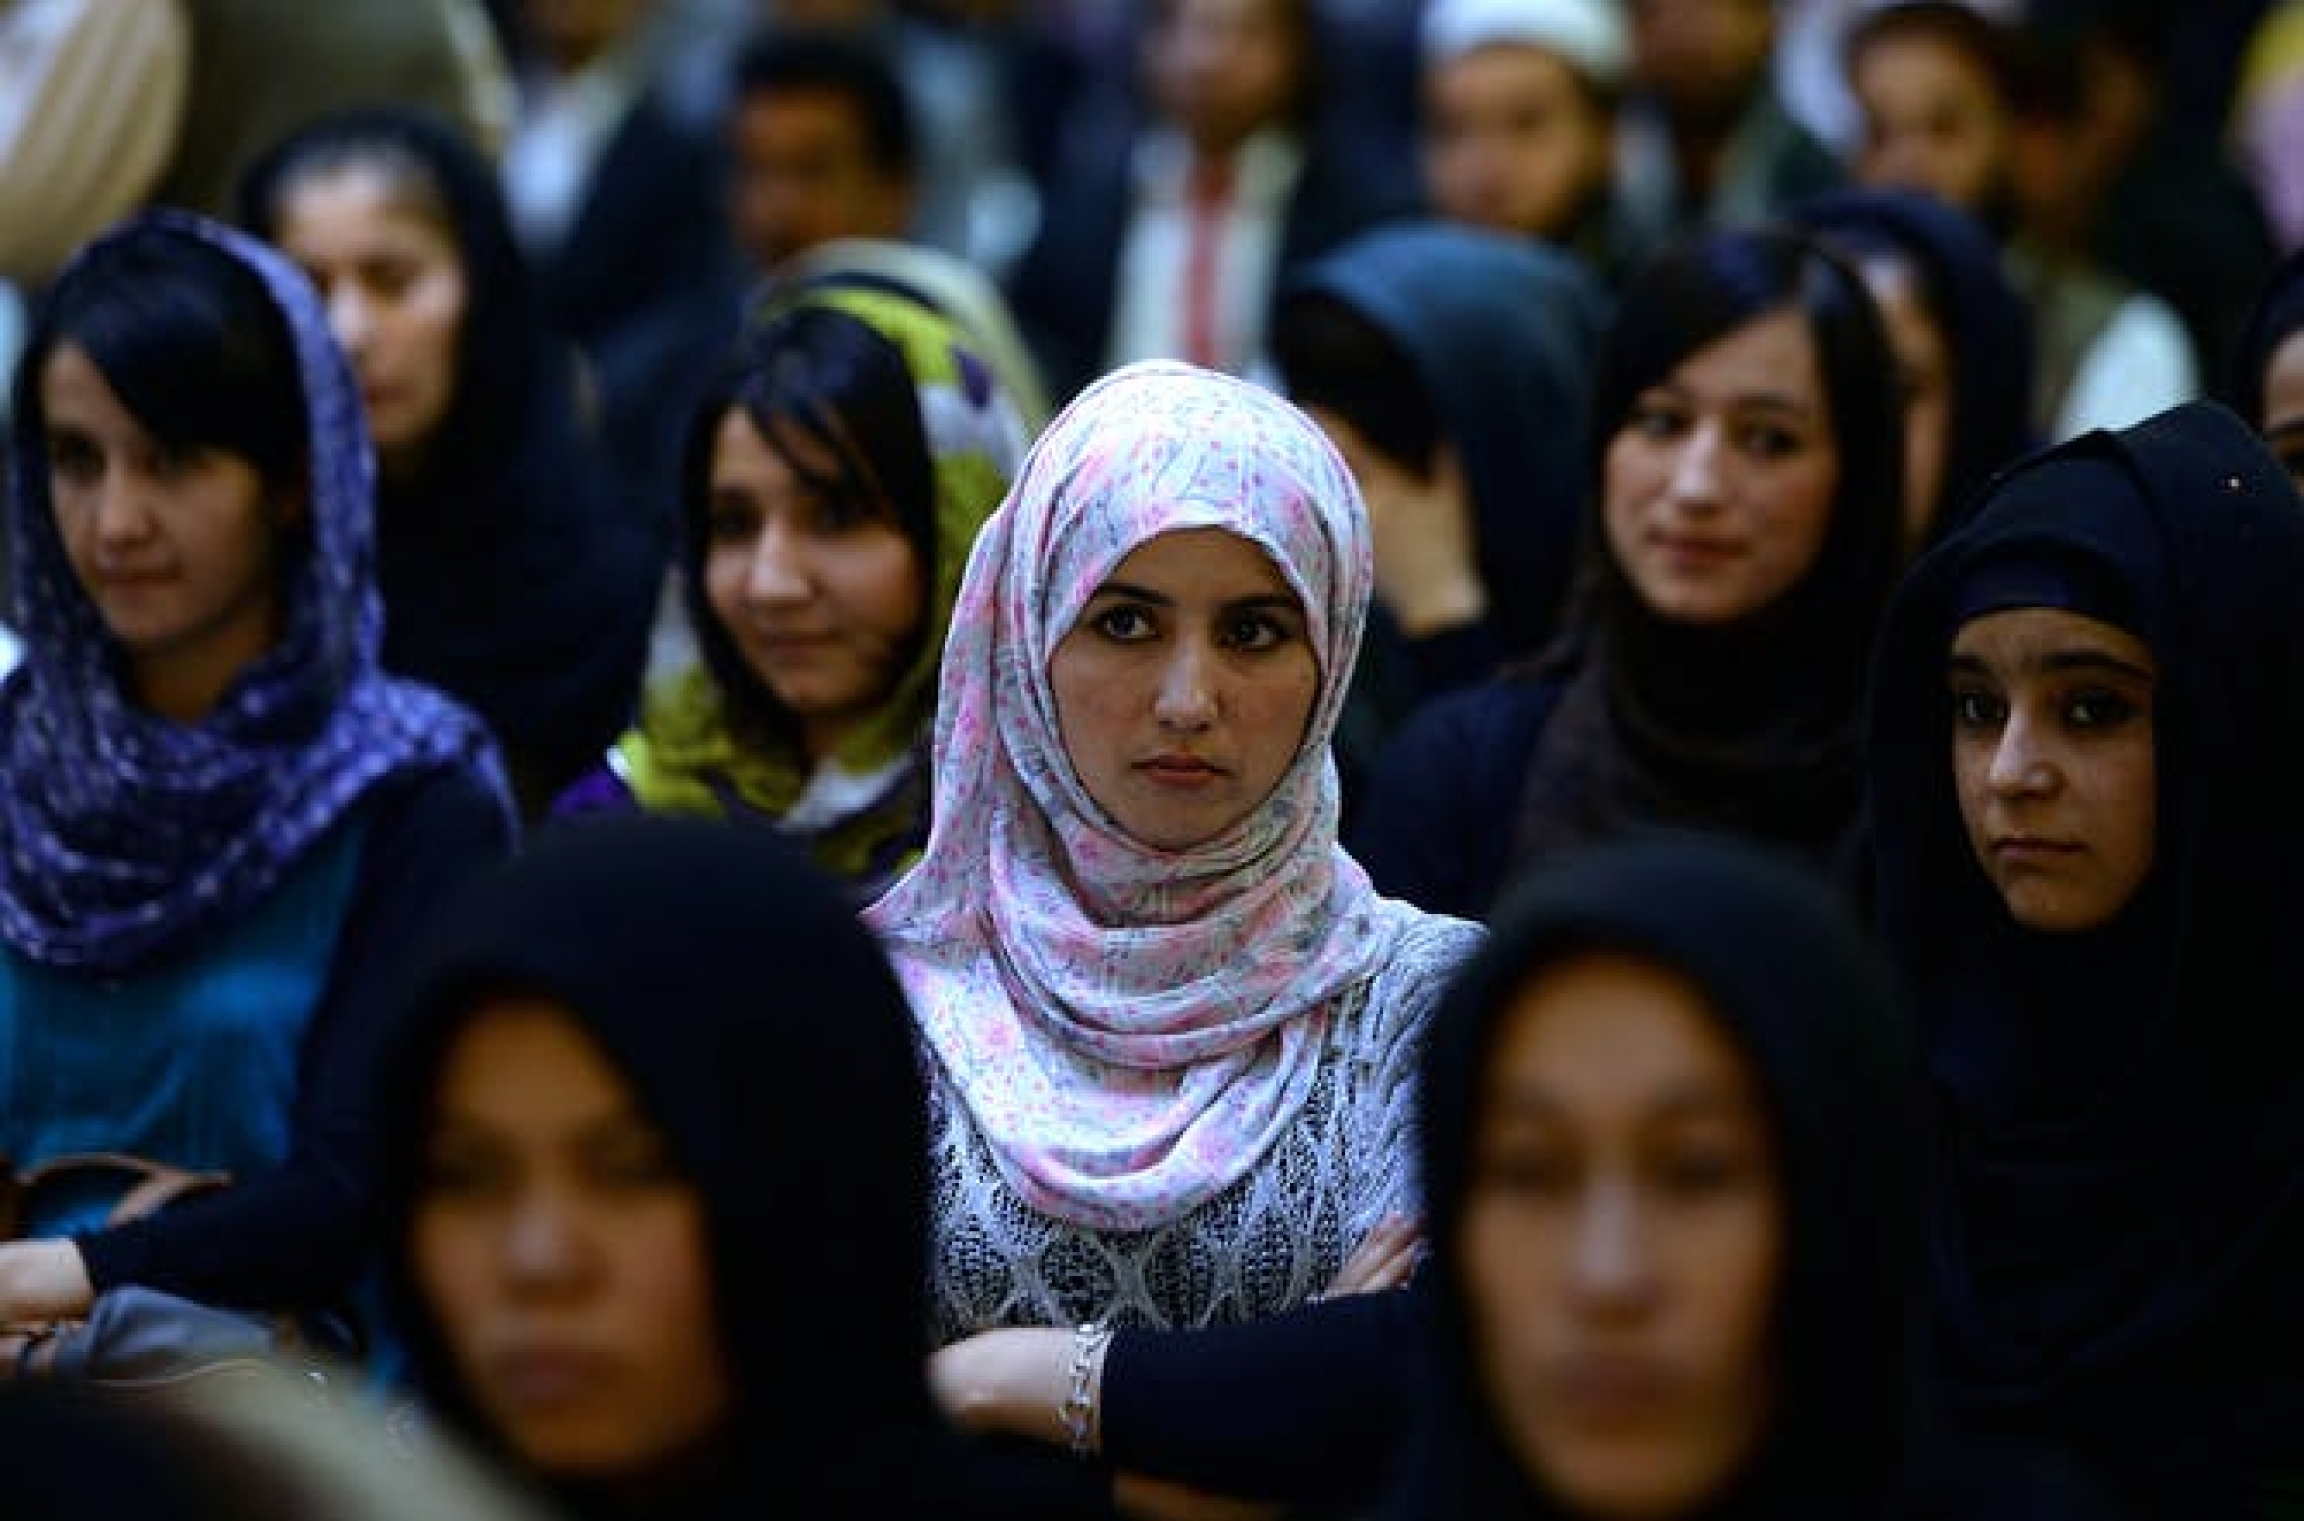 The camera focuses on a woman in an audience group of women.